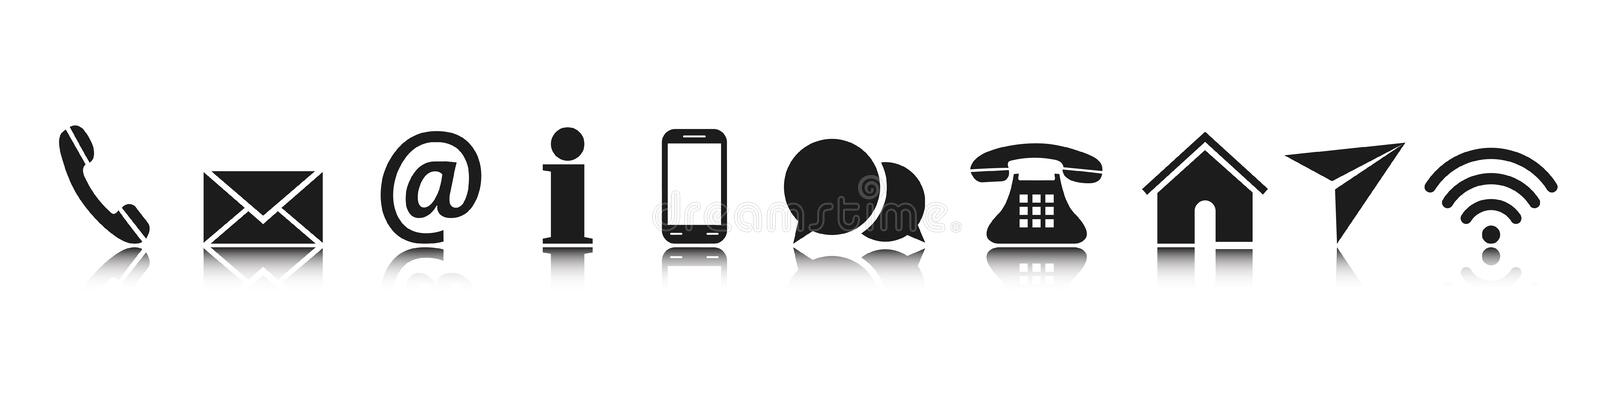 Set black contact icons, communication signs - vector royalty free illustration